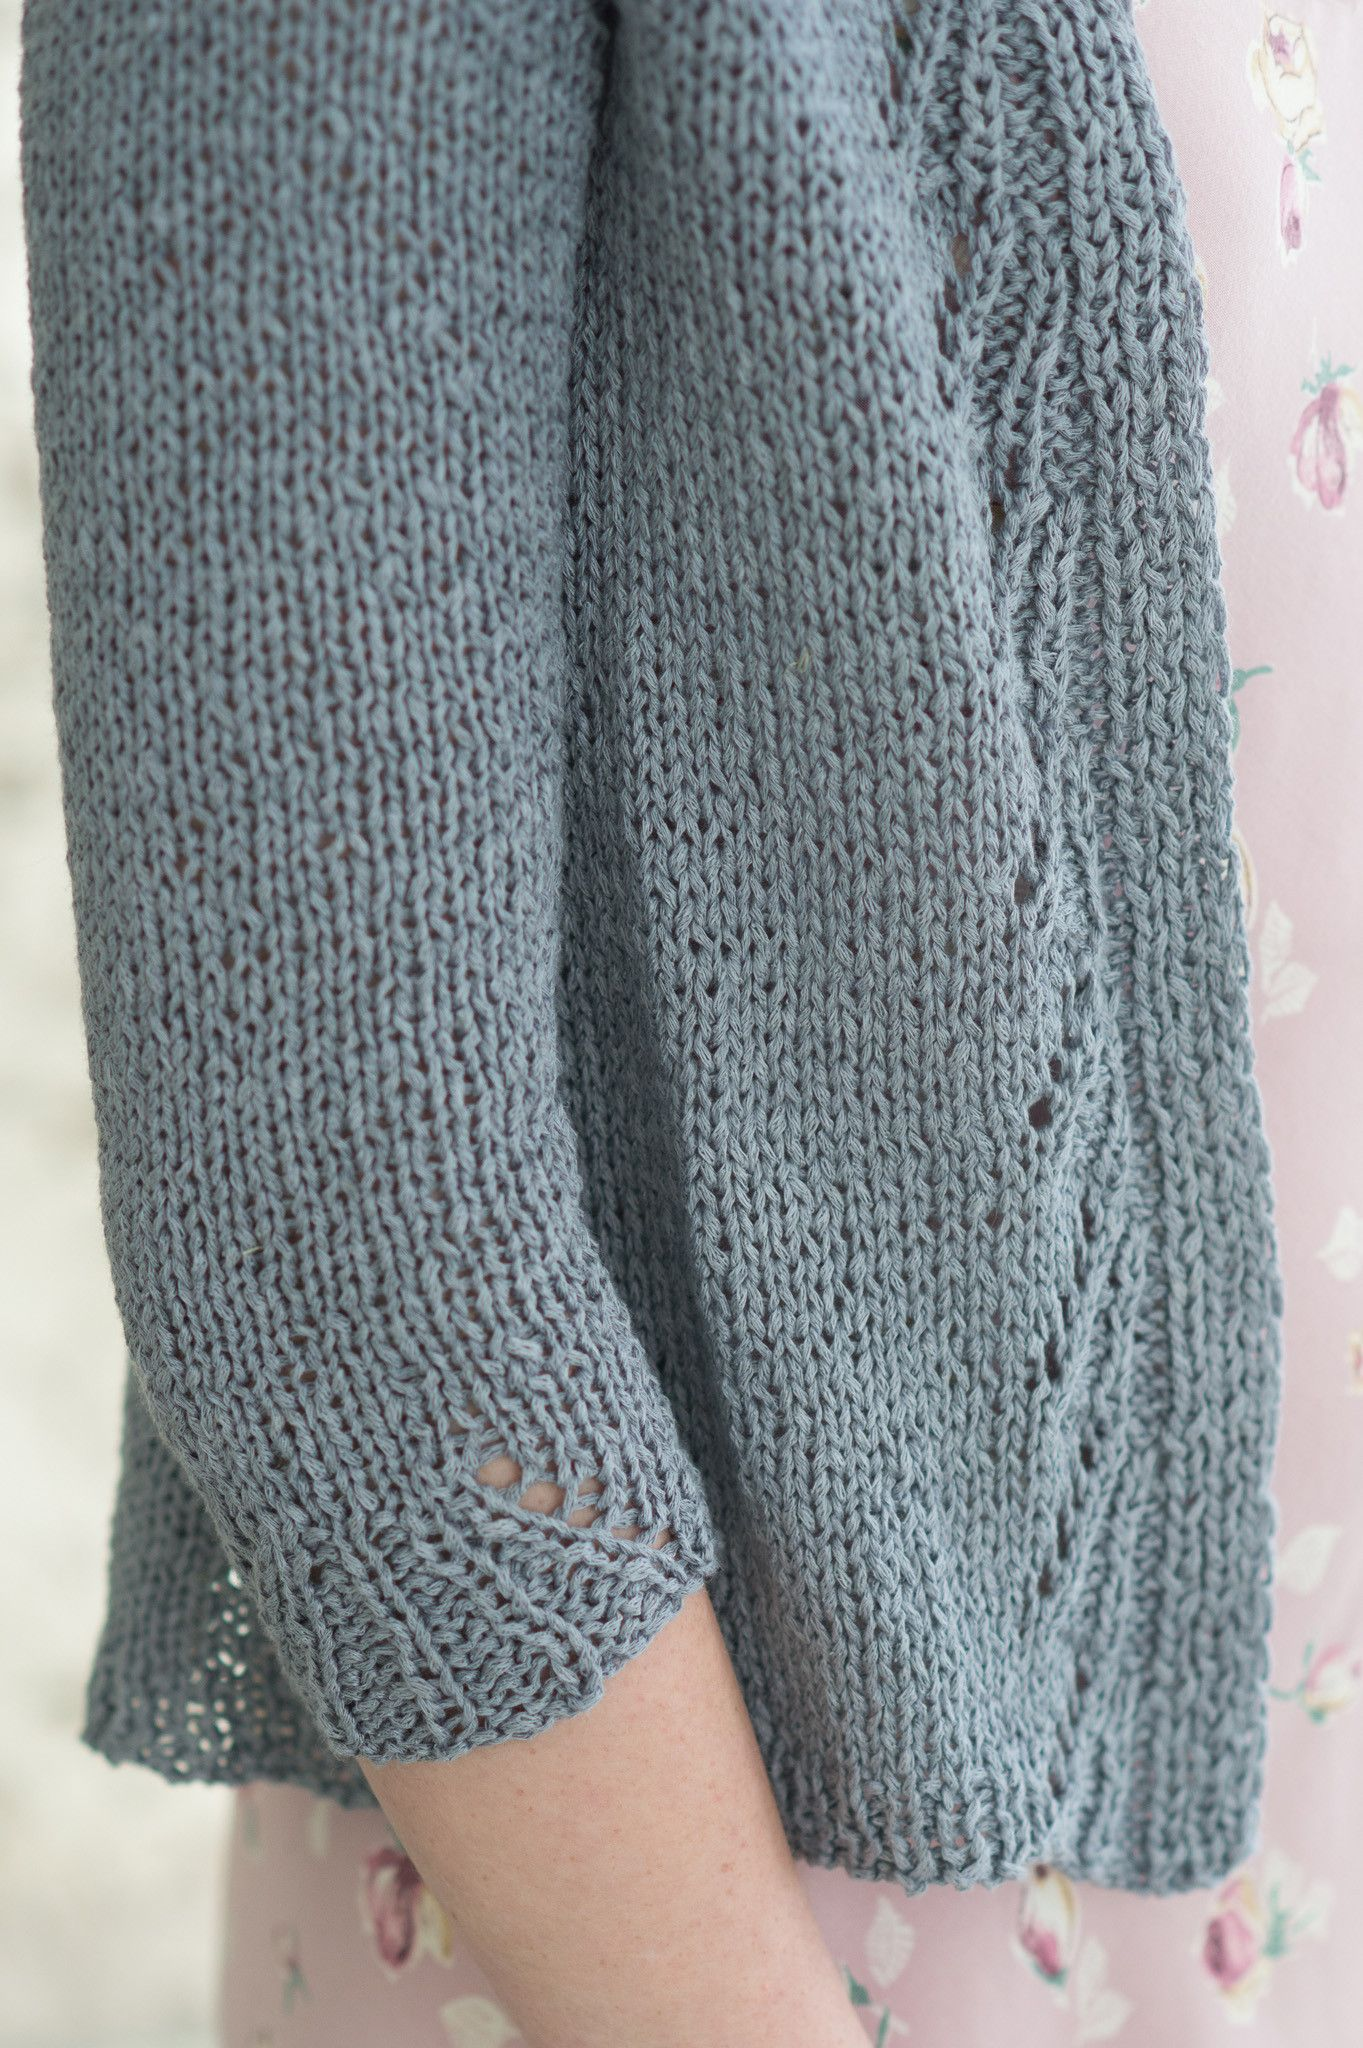 Morning glory by pam allen quince co kestrel in porpoise knit knitting ideas dt1010fo